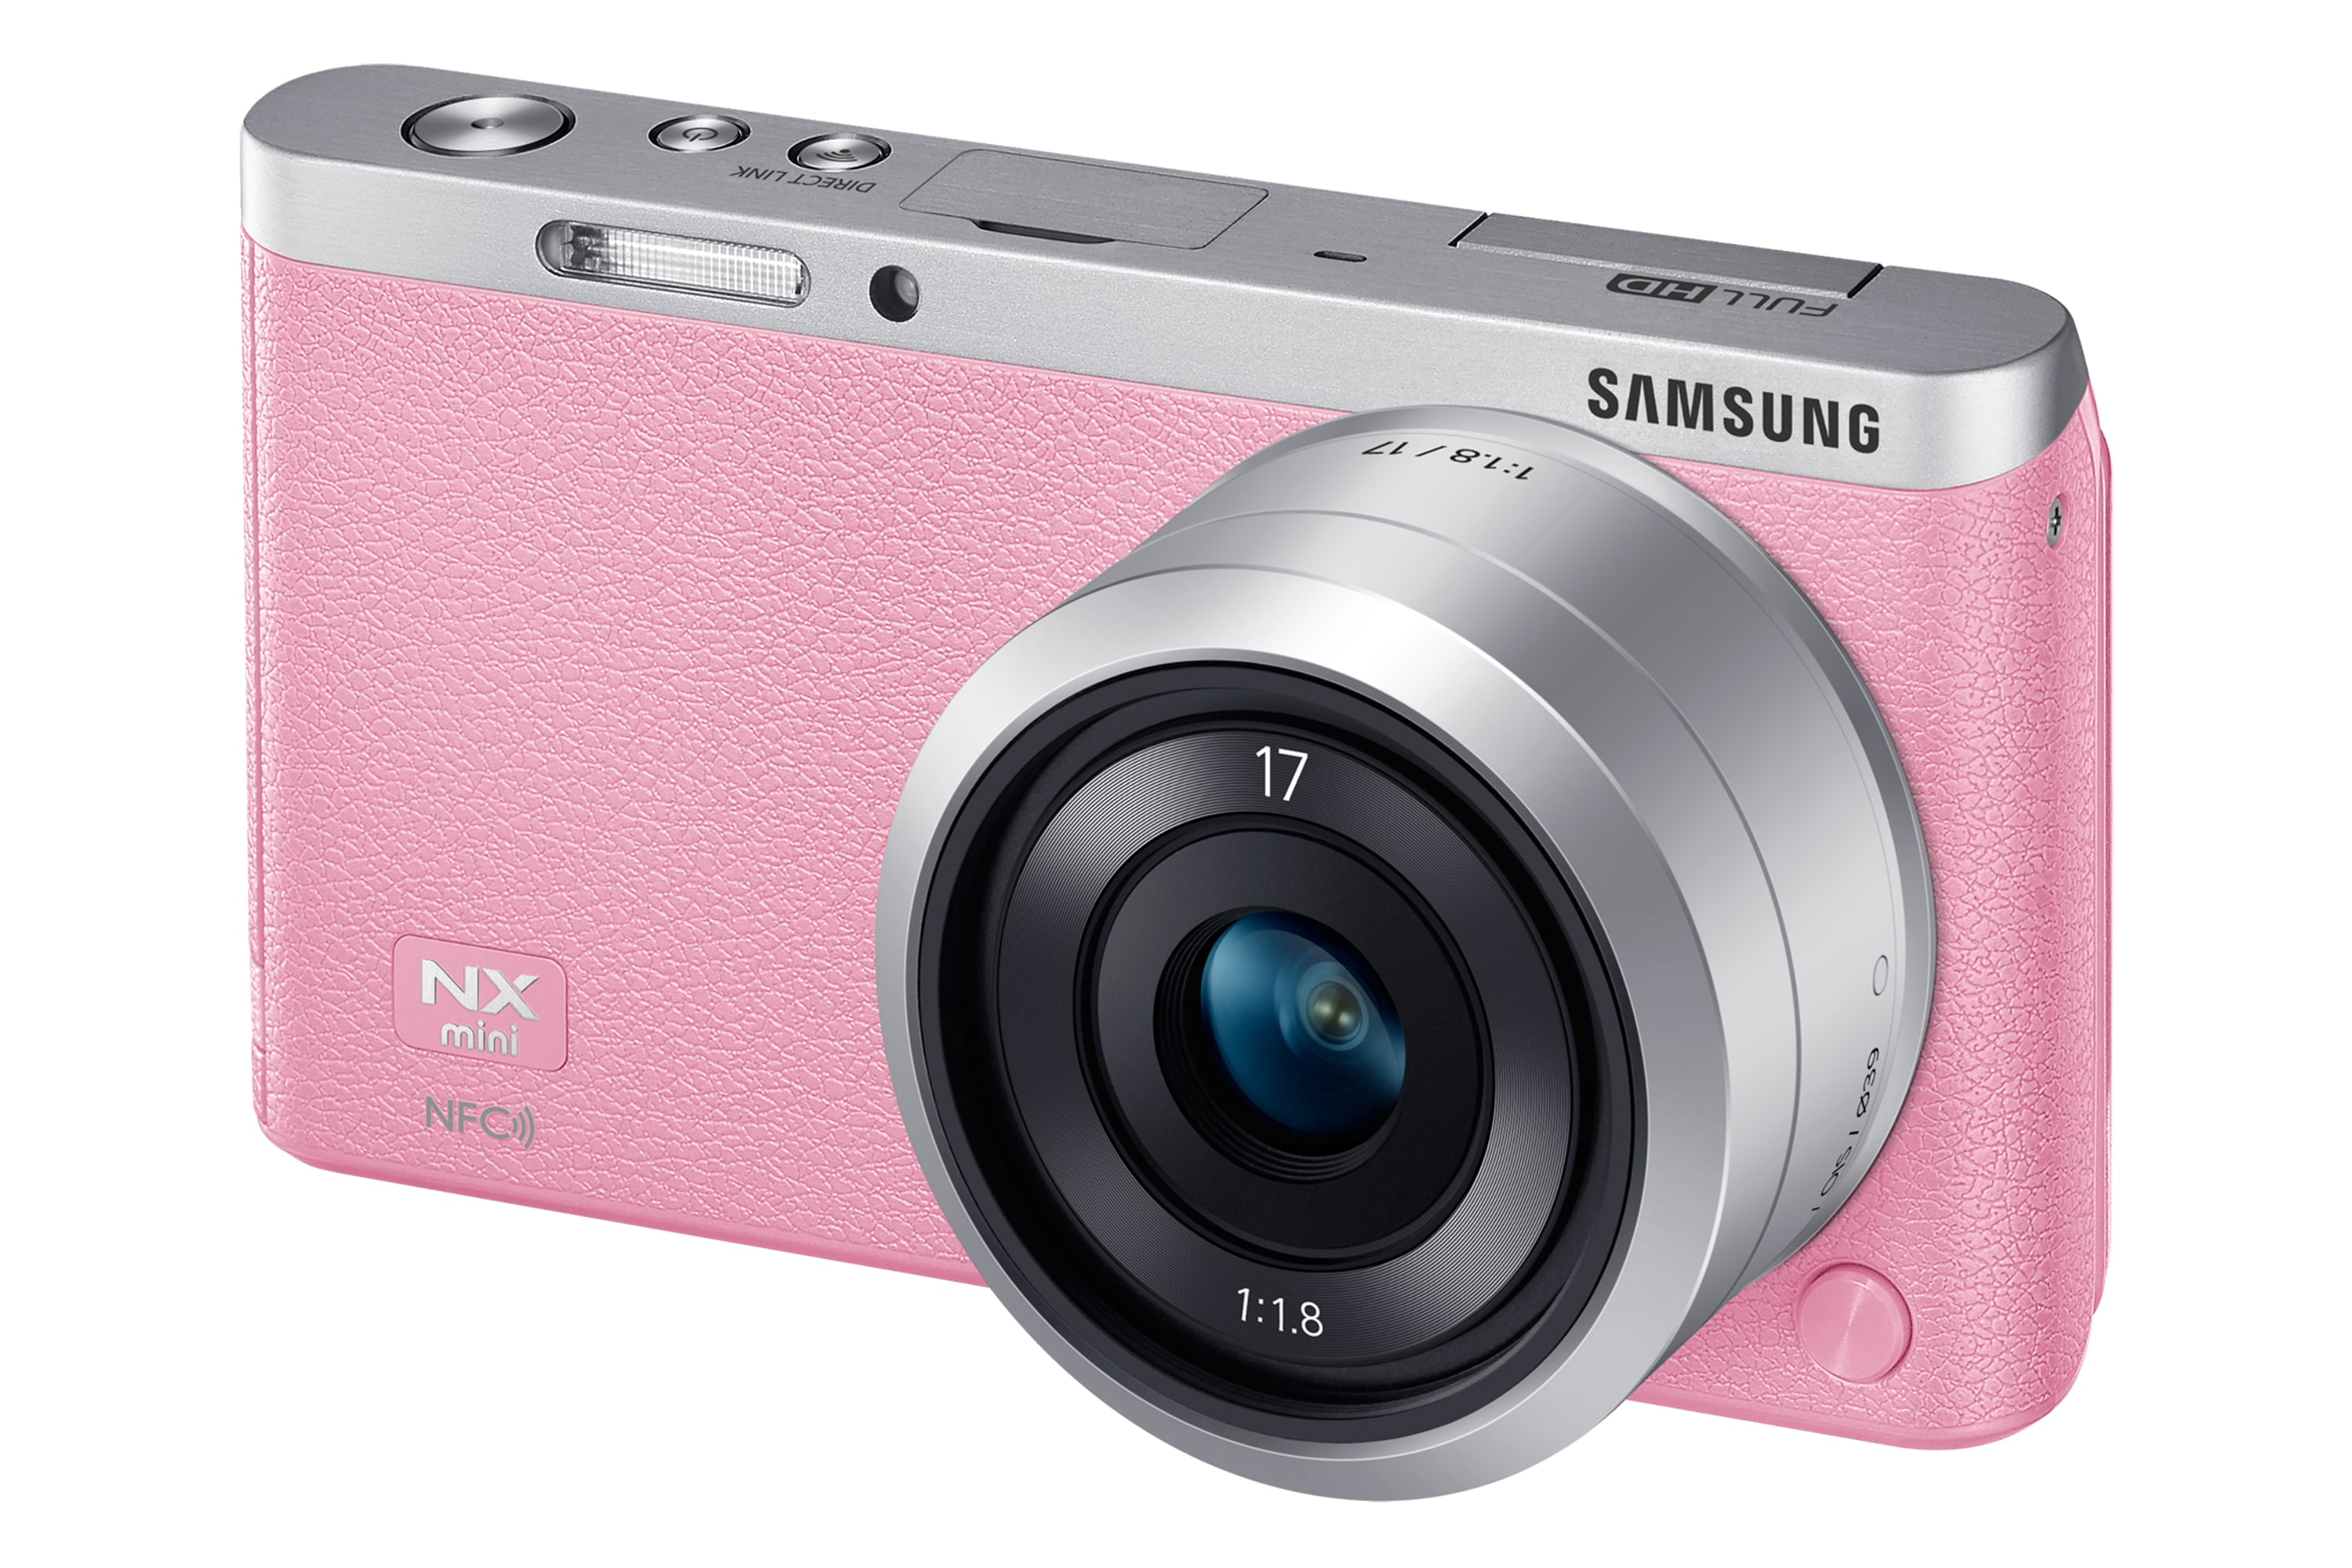 SMART CAMERA NX mini (17mm 镜头套机)